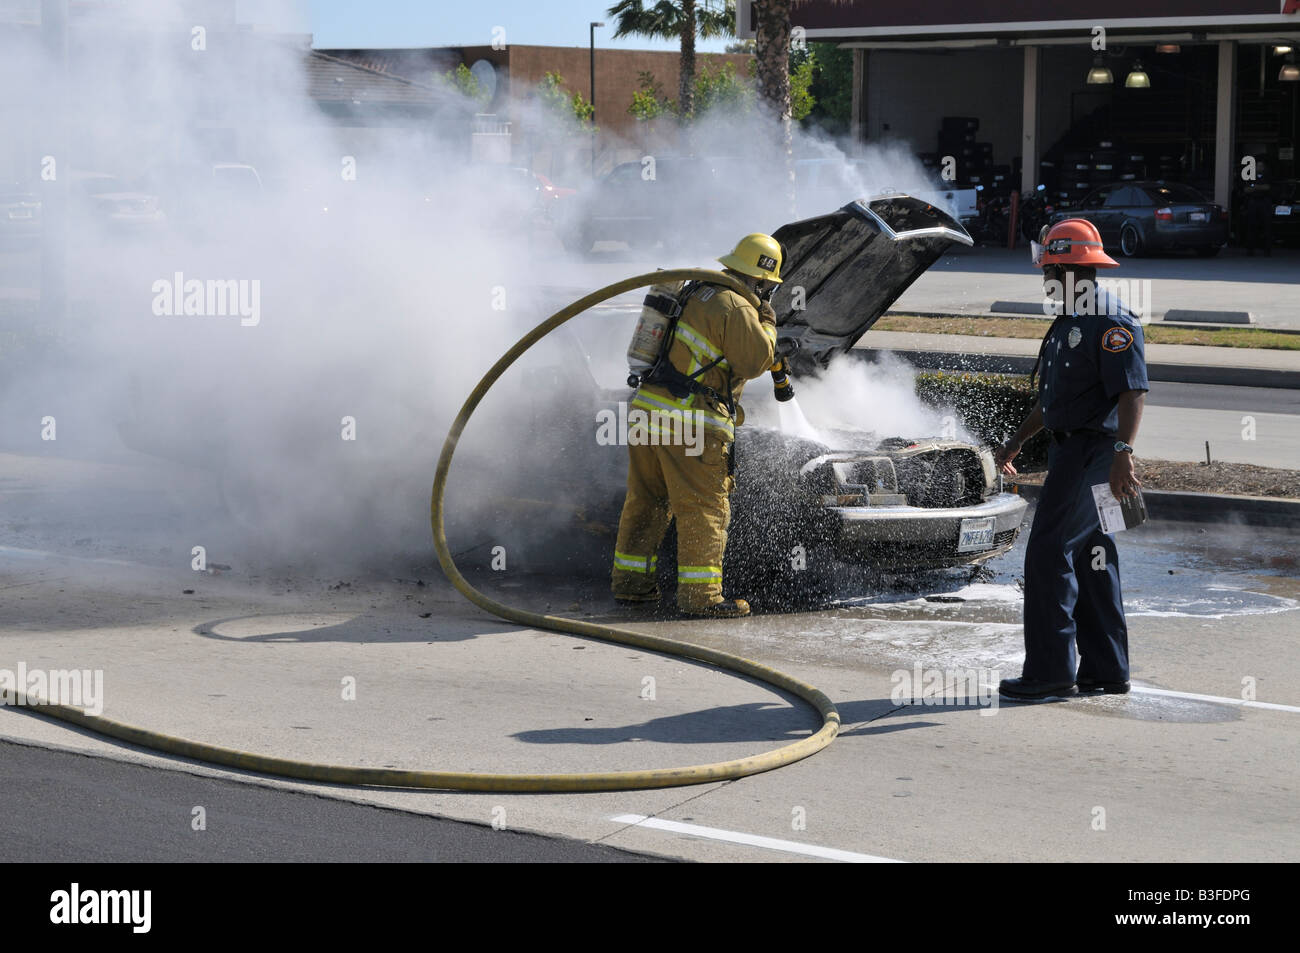 Firefighter Putting Out Fire On Burning Mercedes   Stock Image